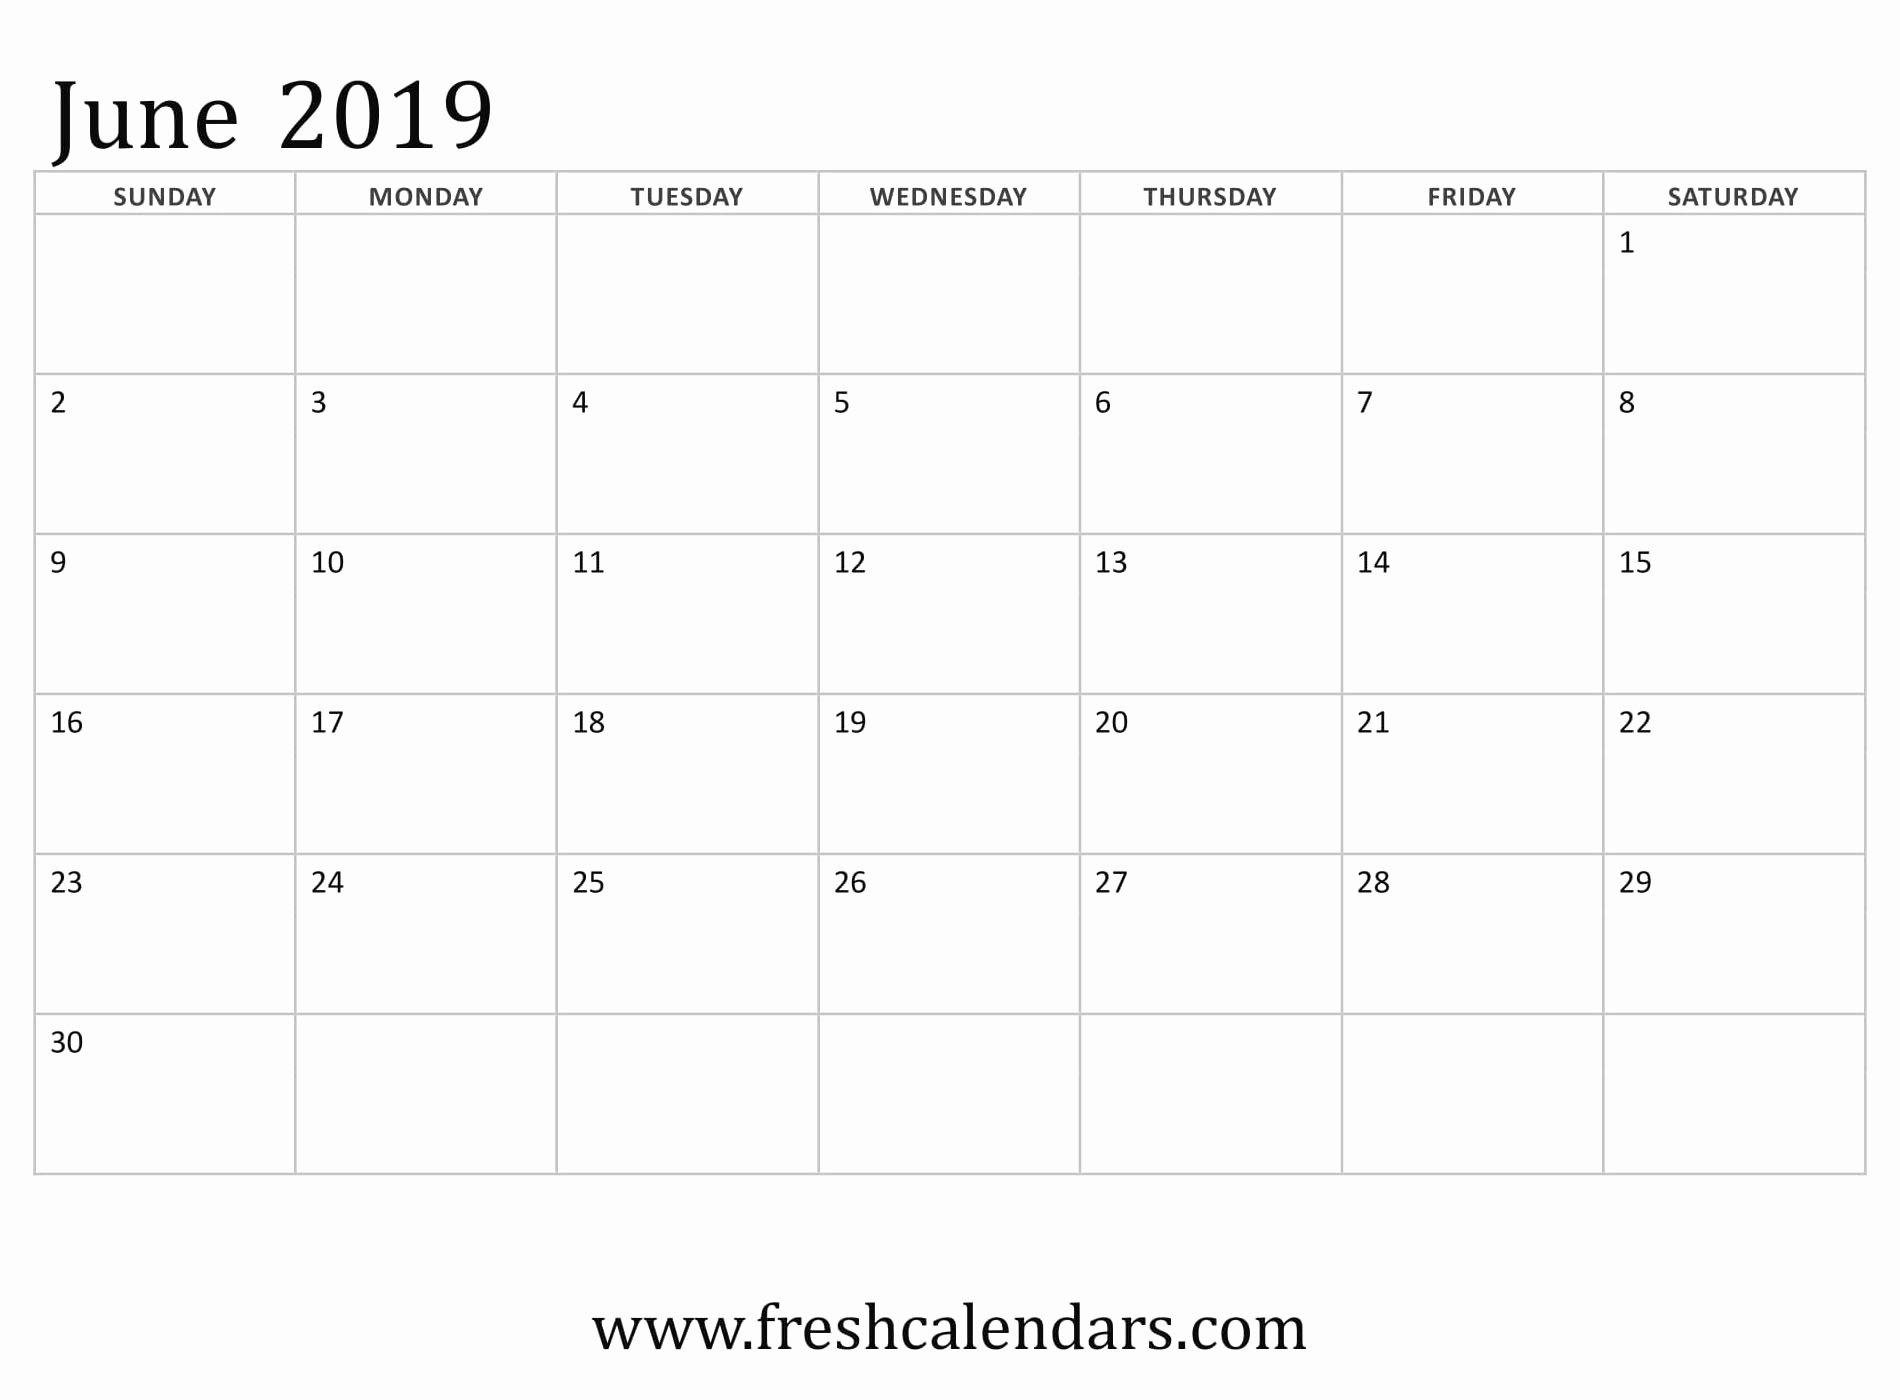 Monthly Calendar Template 2019 Inspirational June 2019 Calendar Printable Fresh Calendars